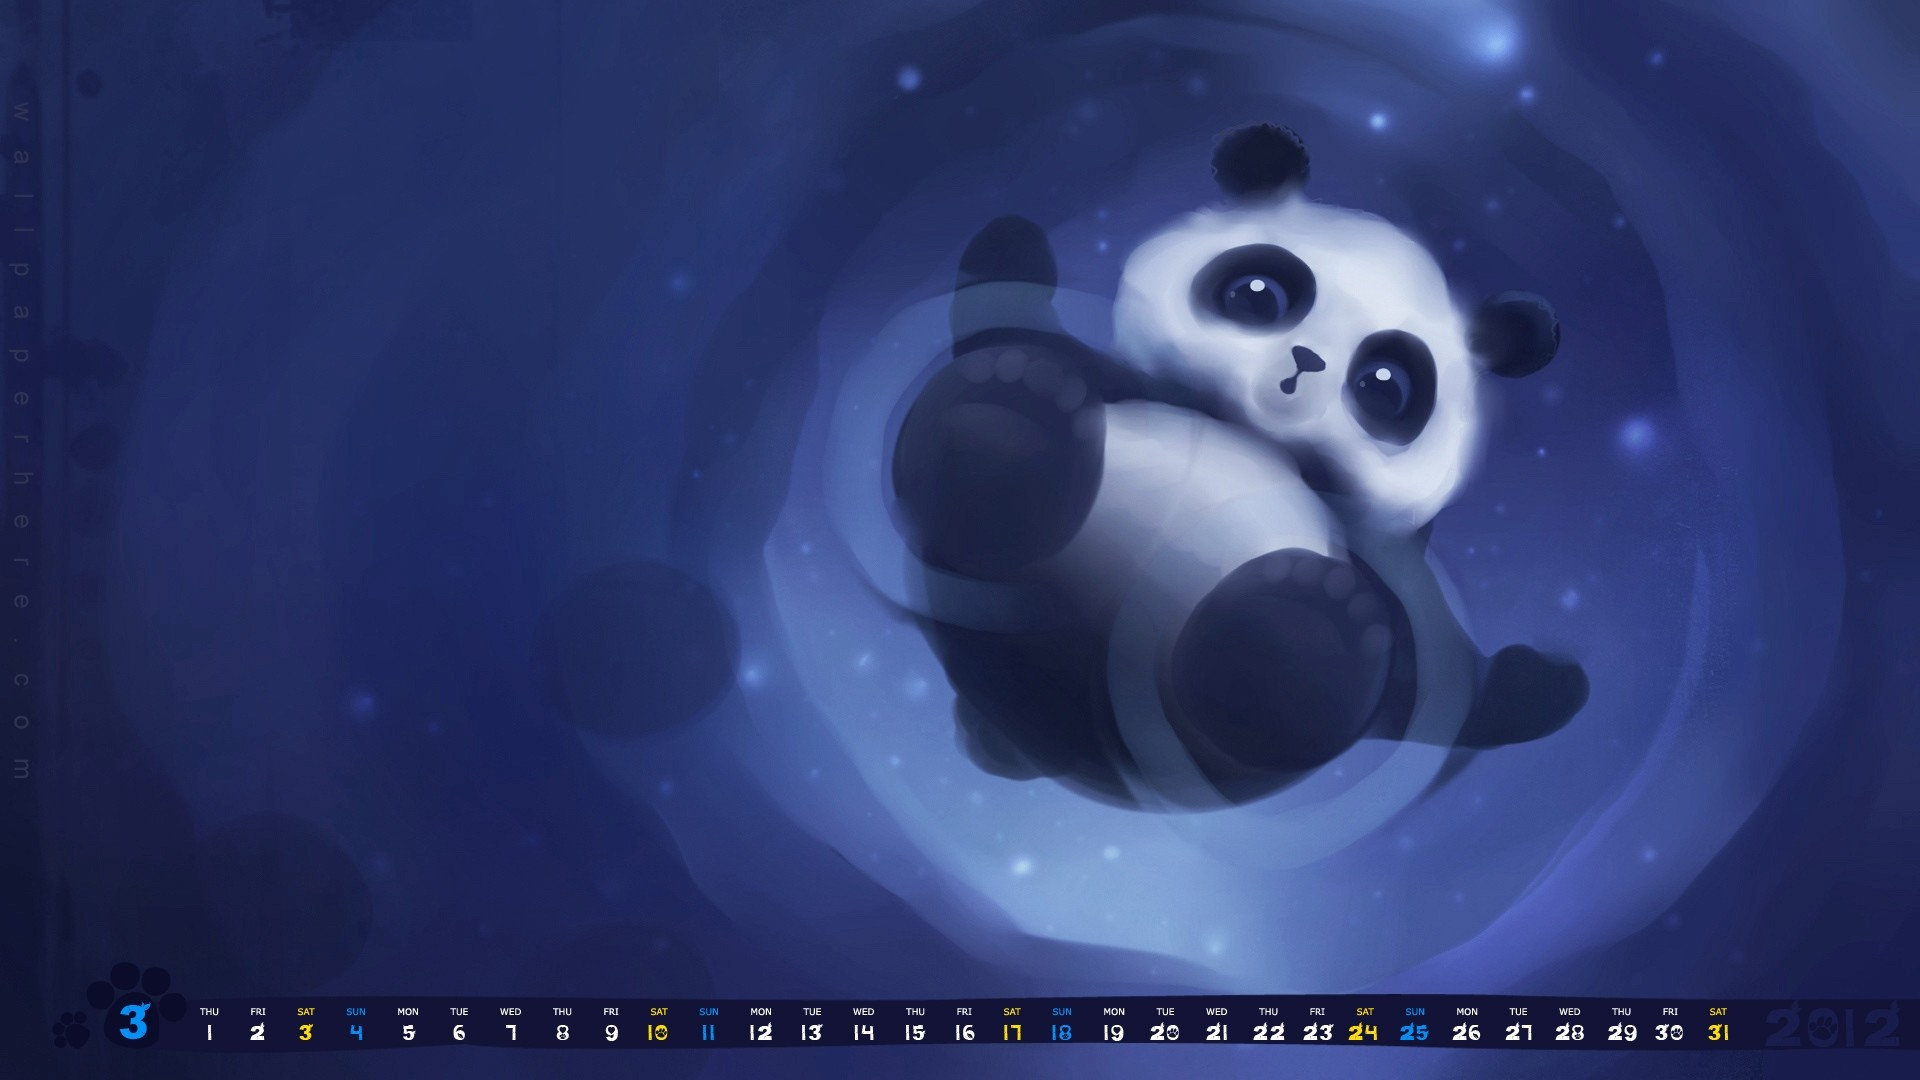 Great Wallpaper Macbook Panda - 456514-cool-cute-panda-background-1920x1080-for-macbook  Image_56729.jpg